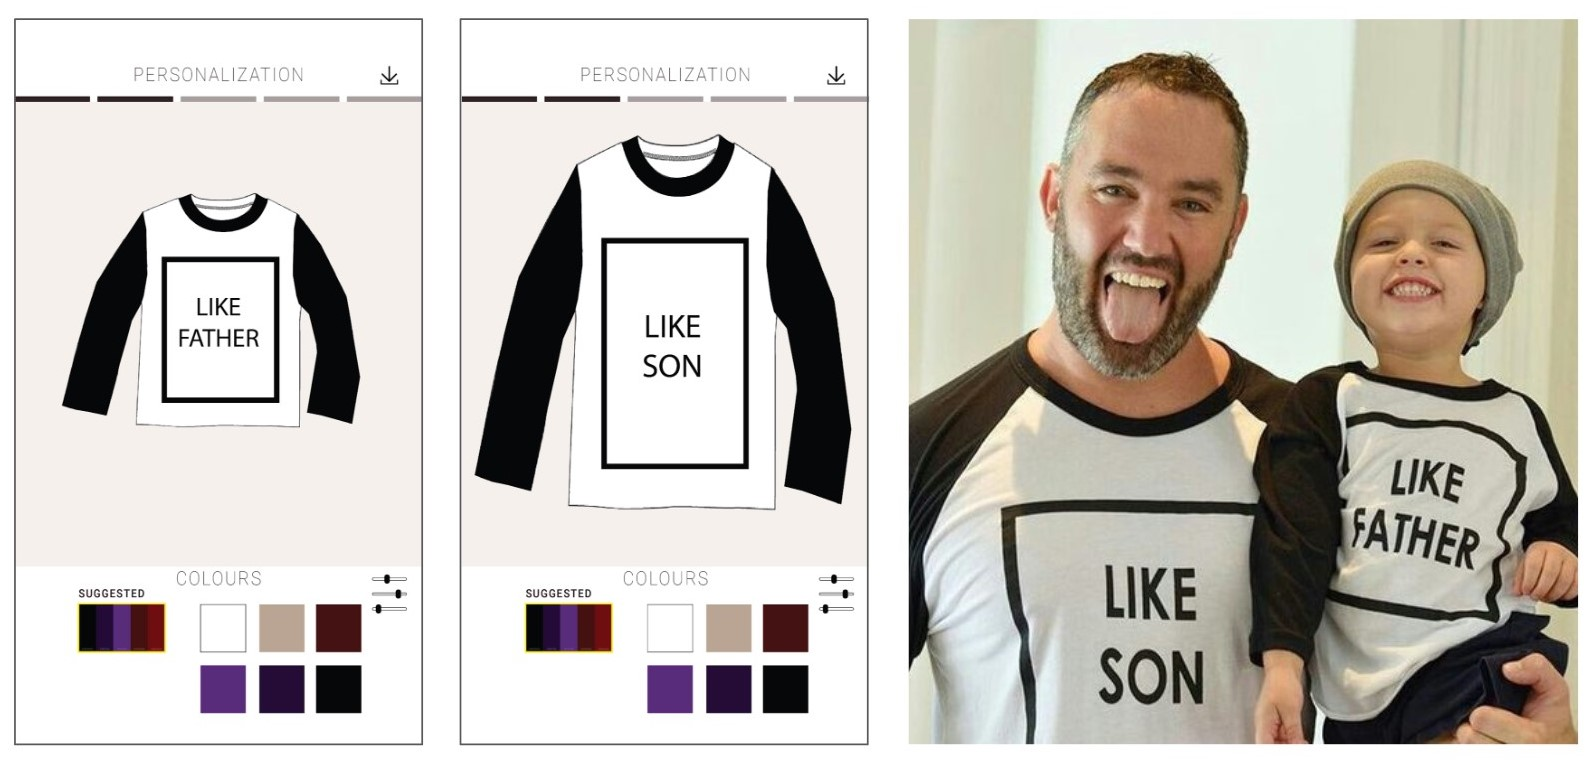 Simple and intuitive. Henry can co-design unique garments with his son.